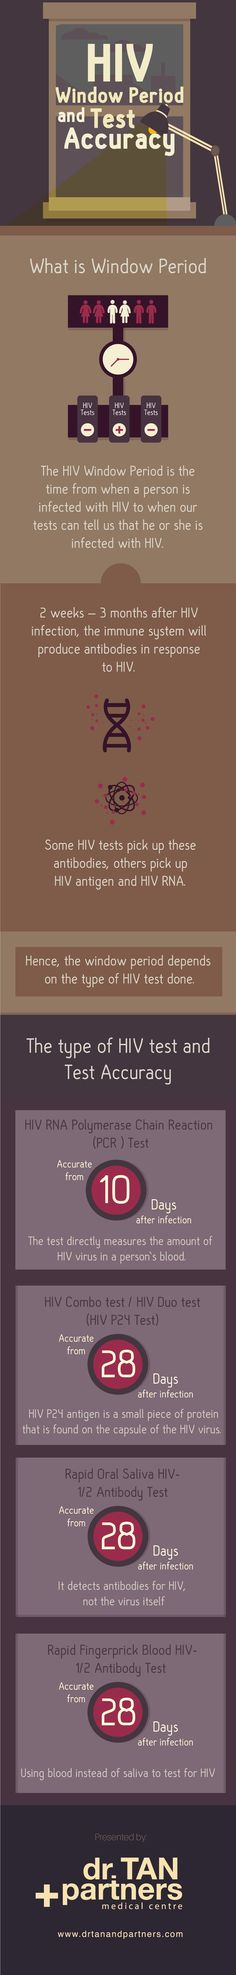 28 Best Hiv & Aids images in 2017 | Aids awareness, Aids